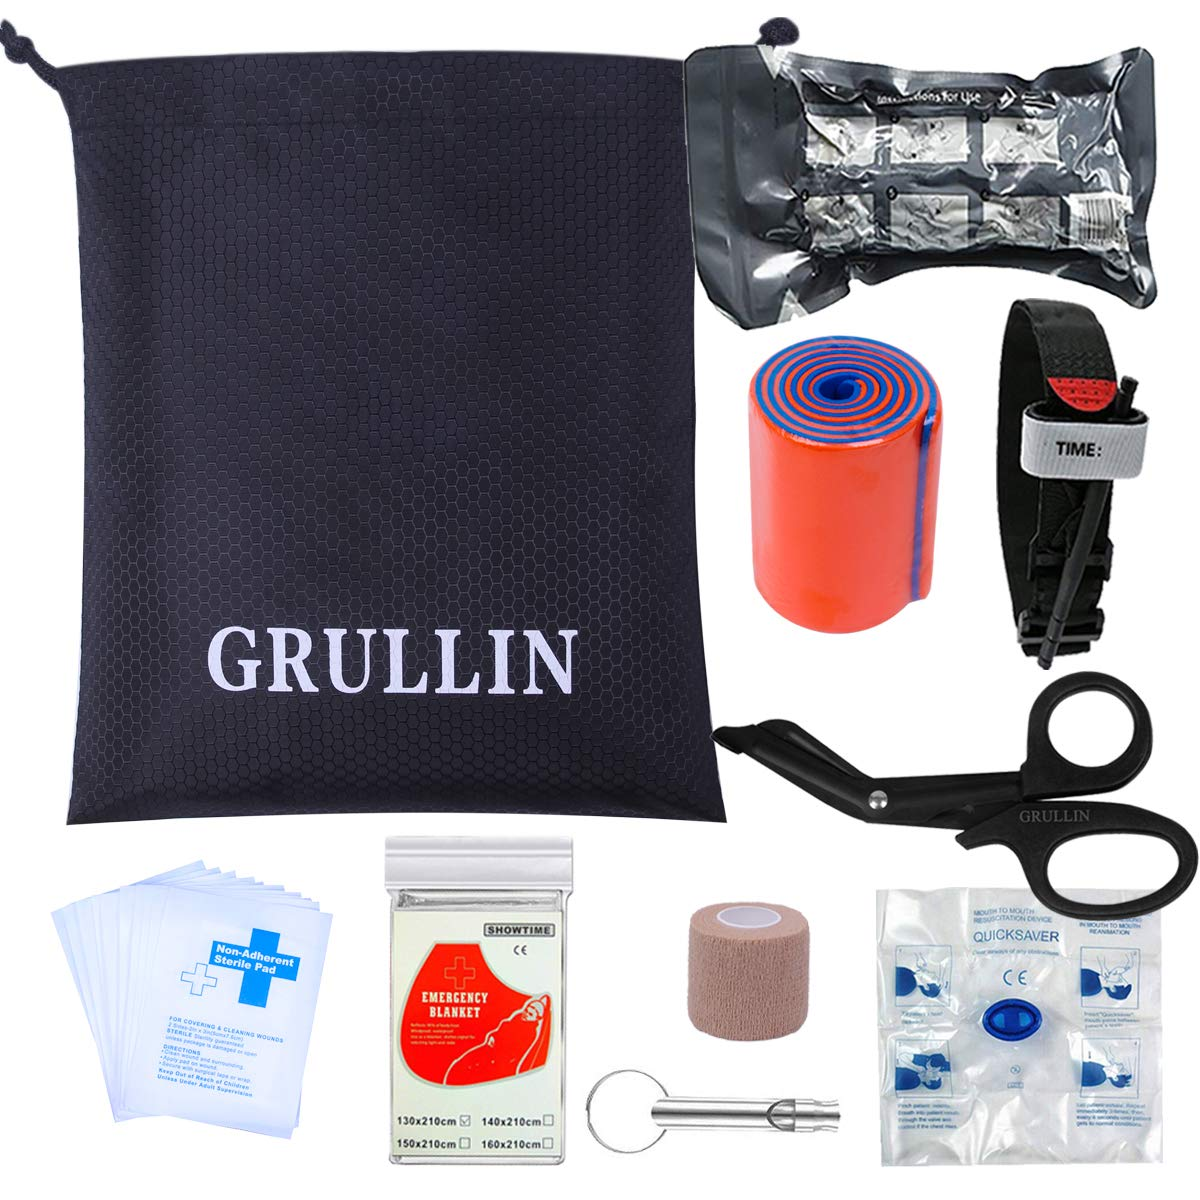 GRULLIN First aid Accessories Supplementary 38 Pieces Kit- CPR Mask Emergency Blanket Alcohol Pad Israeli Bandage Tourniquet (Supplementary Kit) by GRULLIN